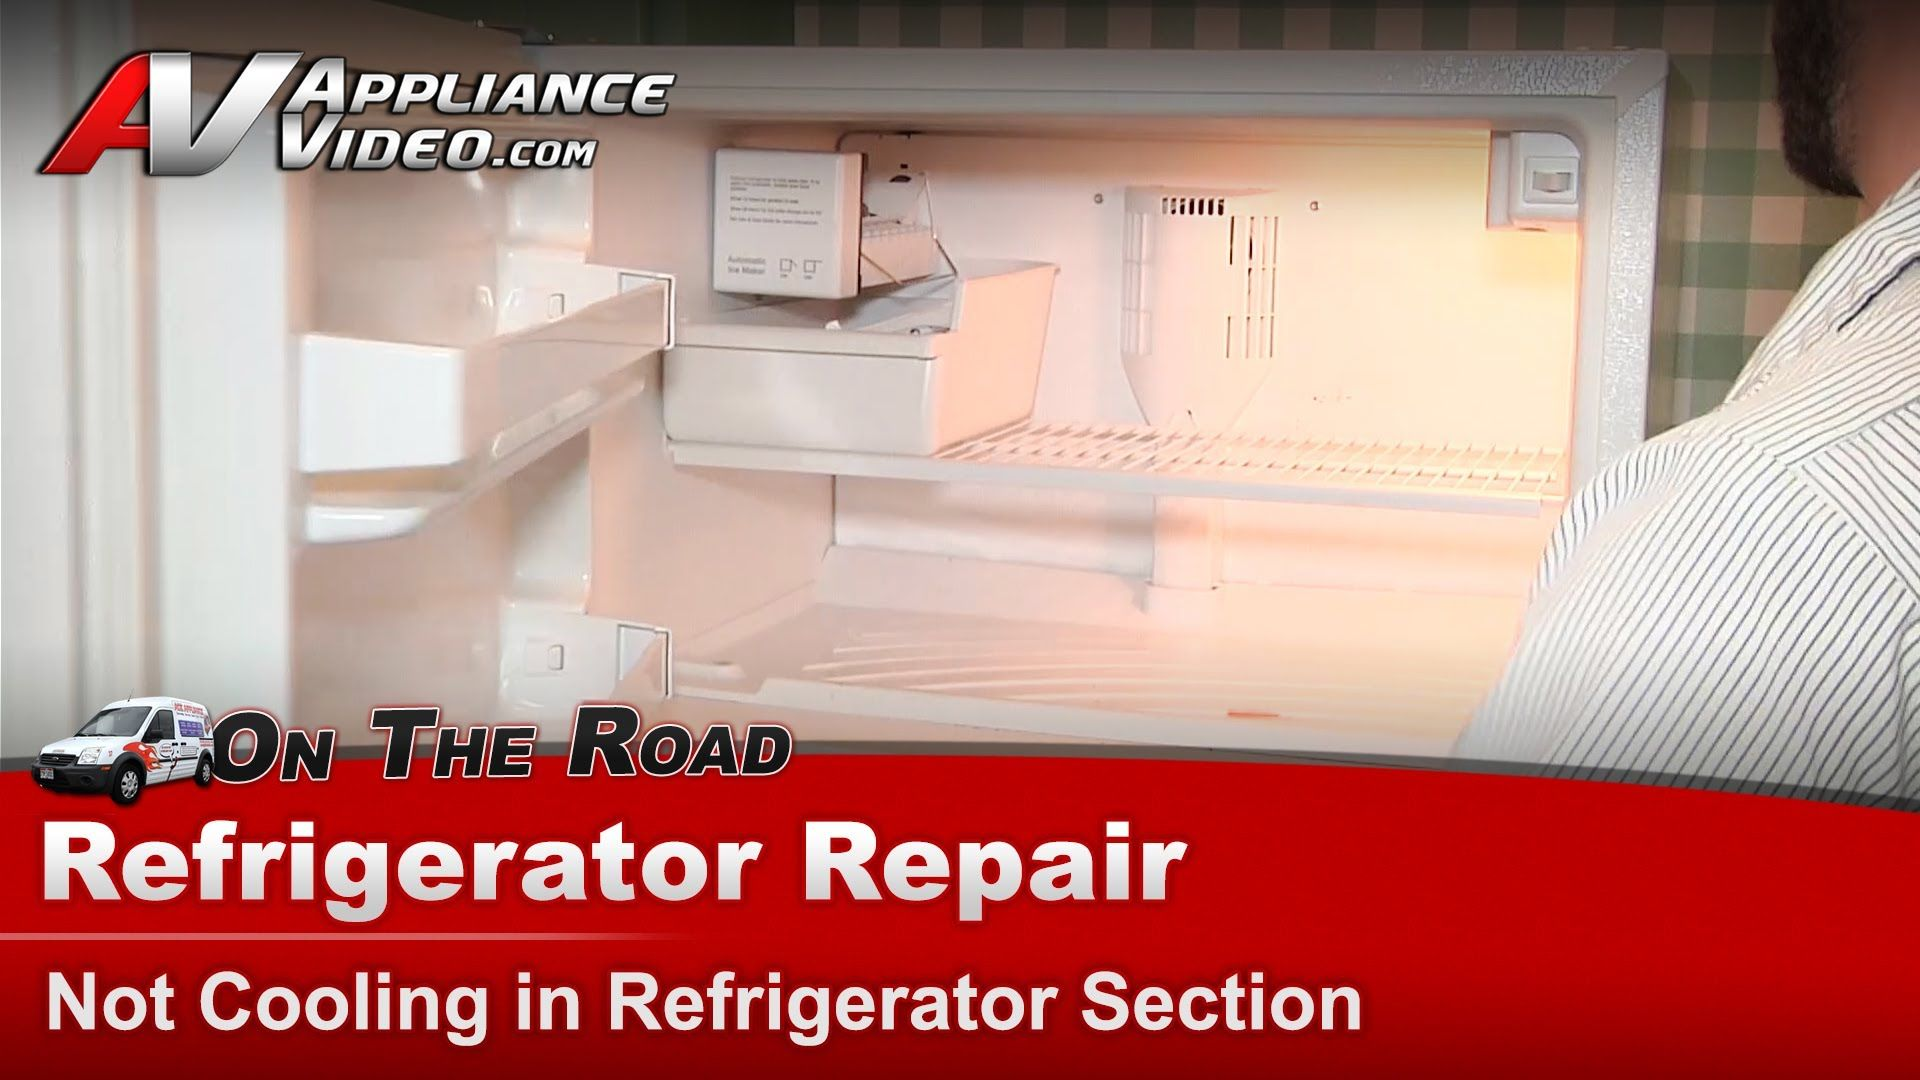 Kenmore Refrigerator Repair Not Cooling In The Refrigerator Section Refrigerator Repair Refrigerator Kitchenaid Refrigerator